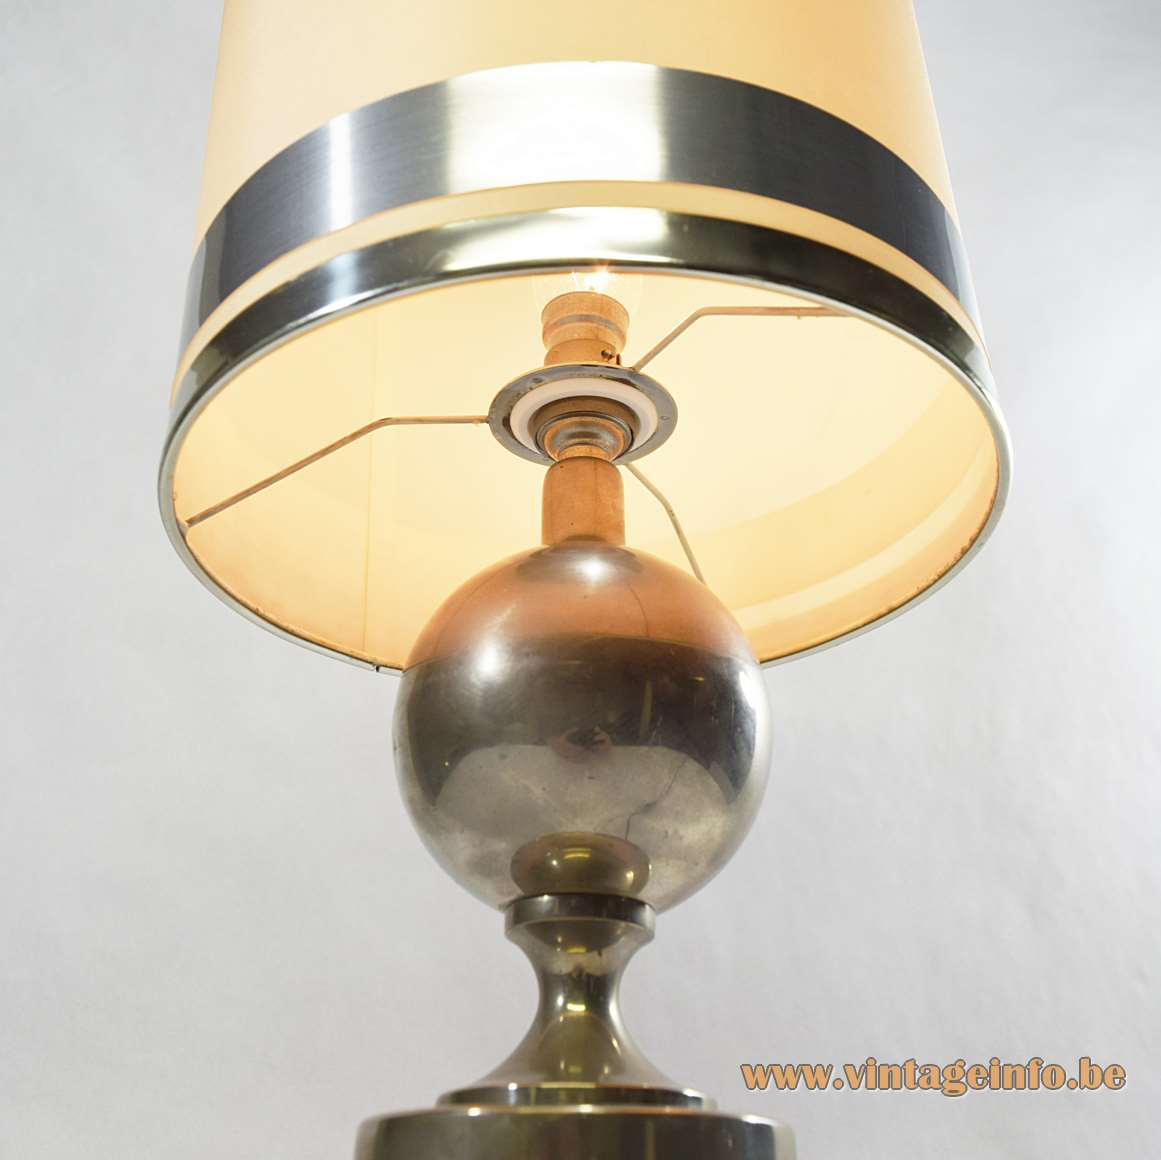 Philippe Barbier Nickel-Plated Table Lamp plastic lampshade 3 chrome rings France 1970s ball round